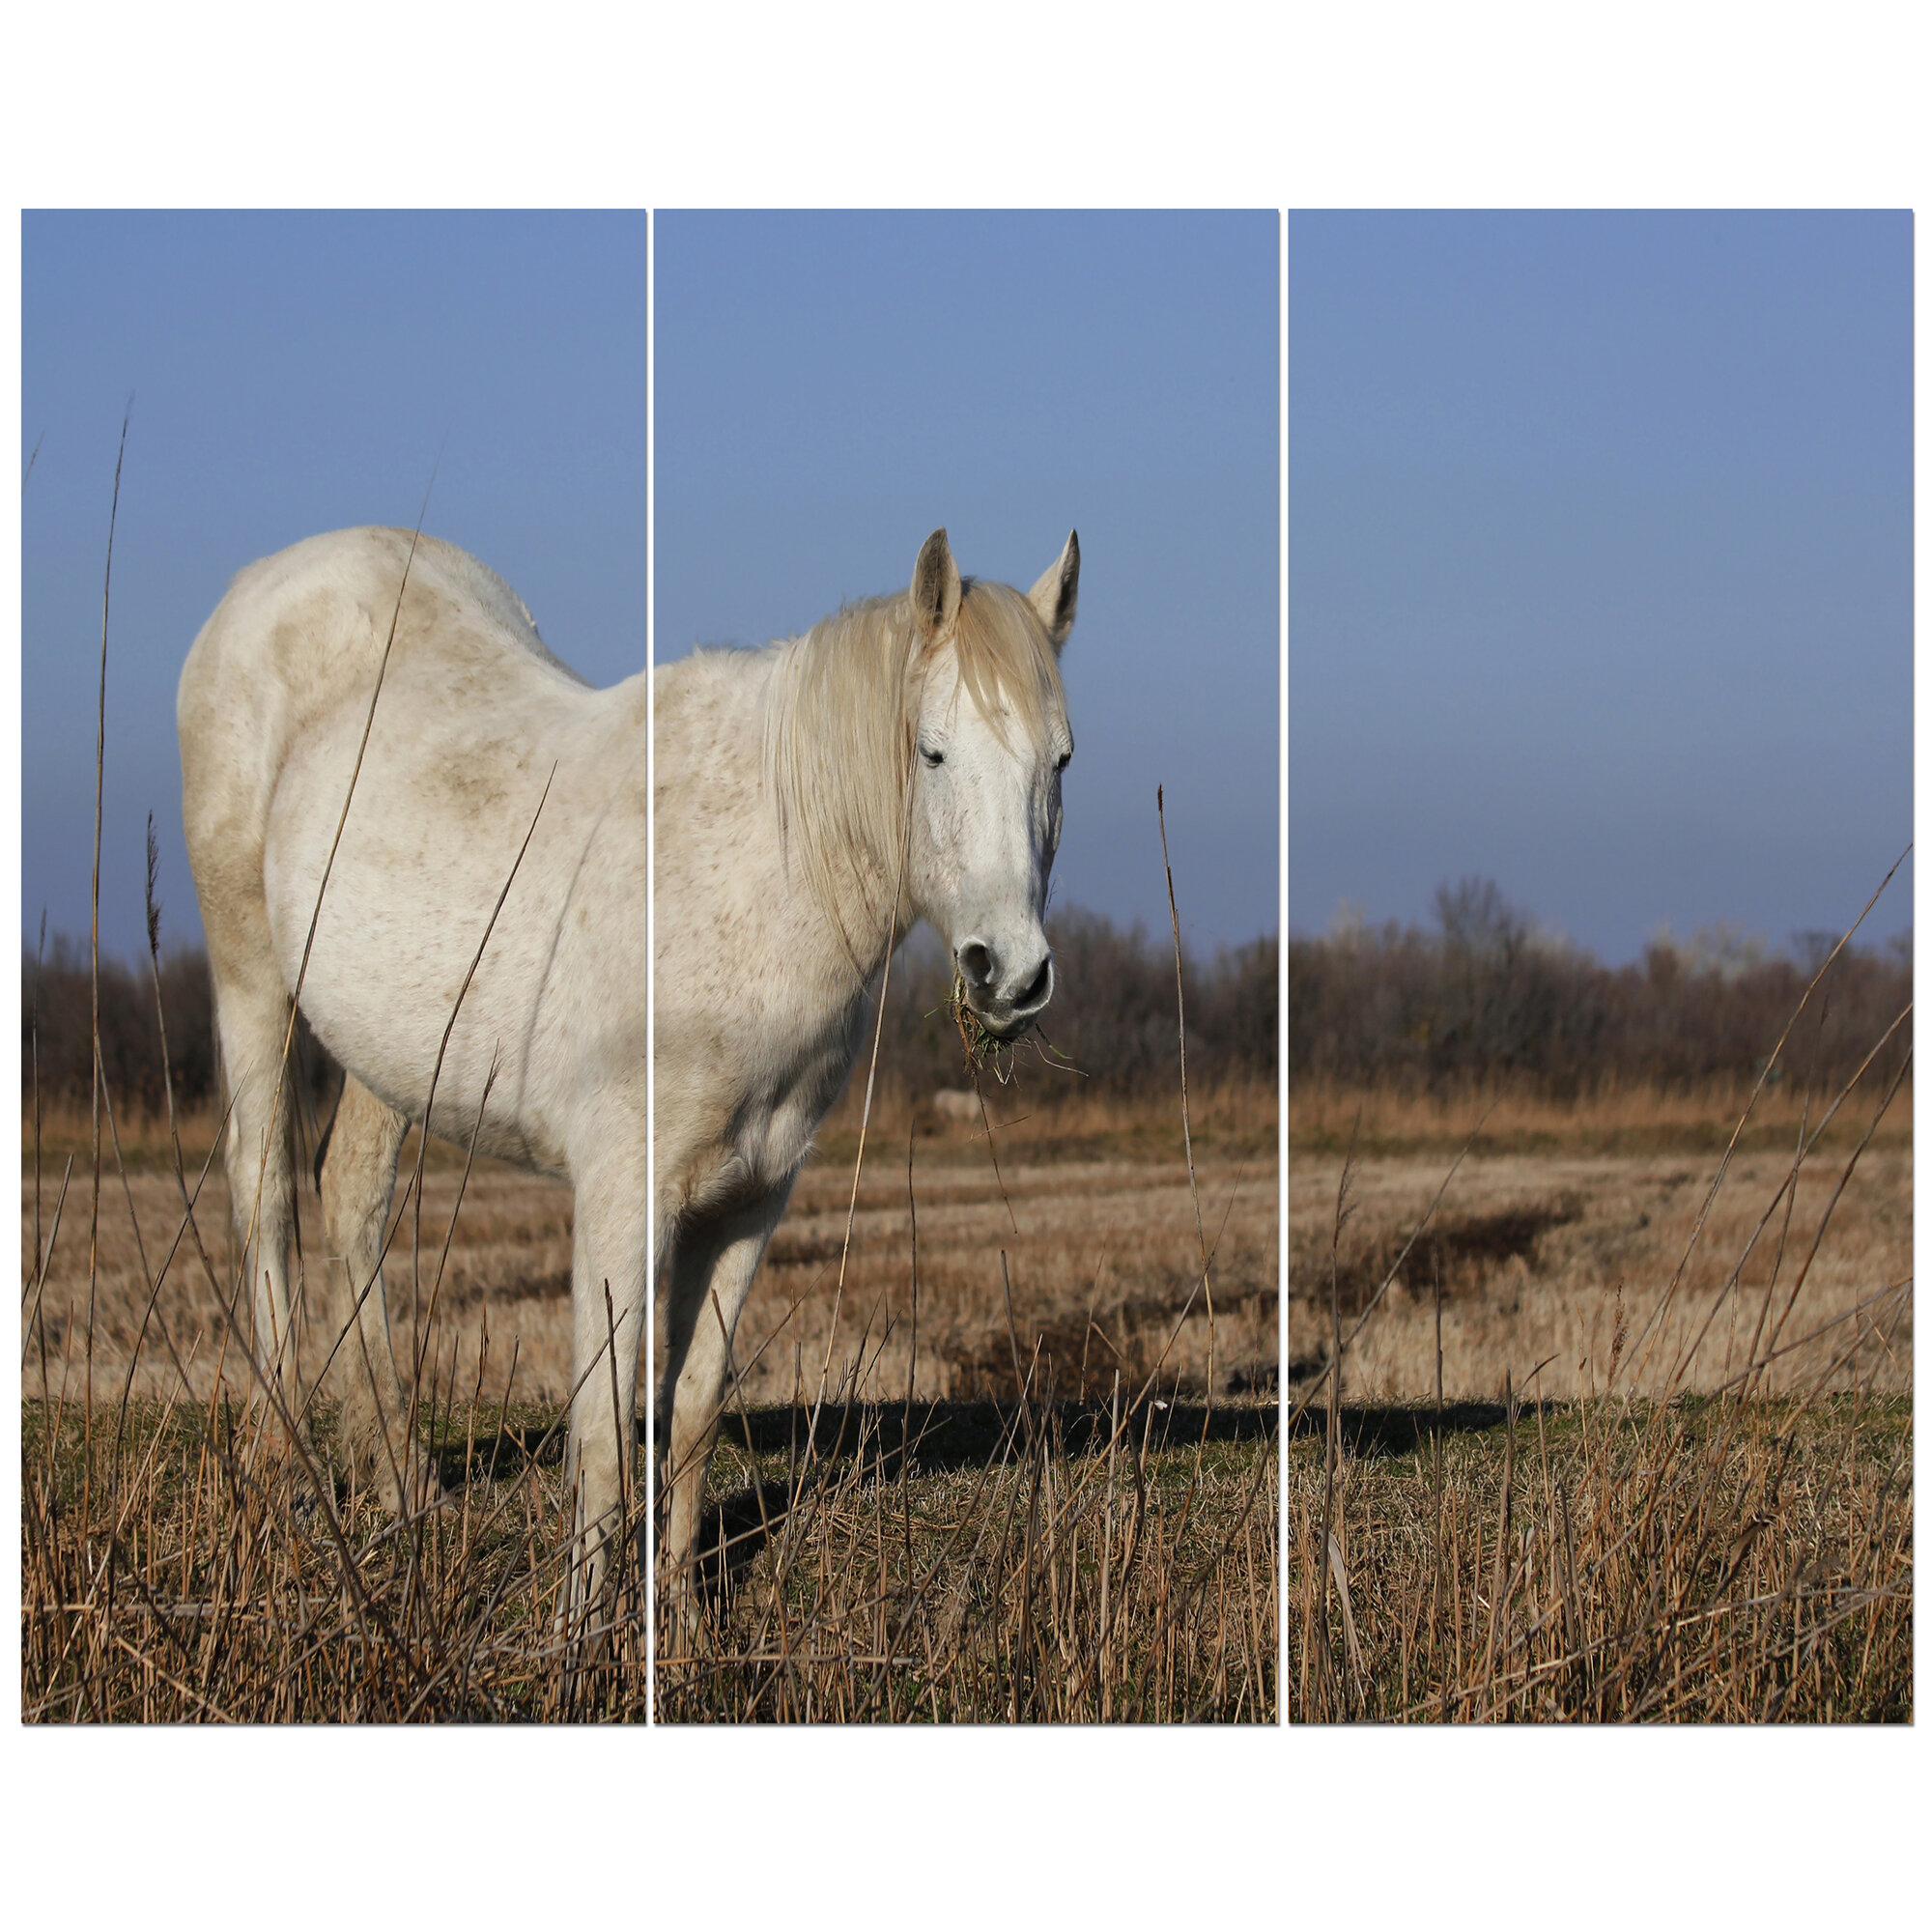 East Urban Home White Wild Horse In Grassland Photographic Print Multi Piece Image On Wrapped Canvas Wayfair